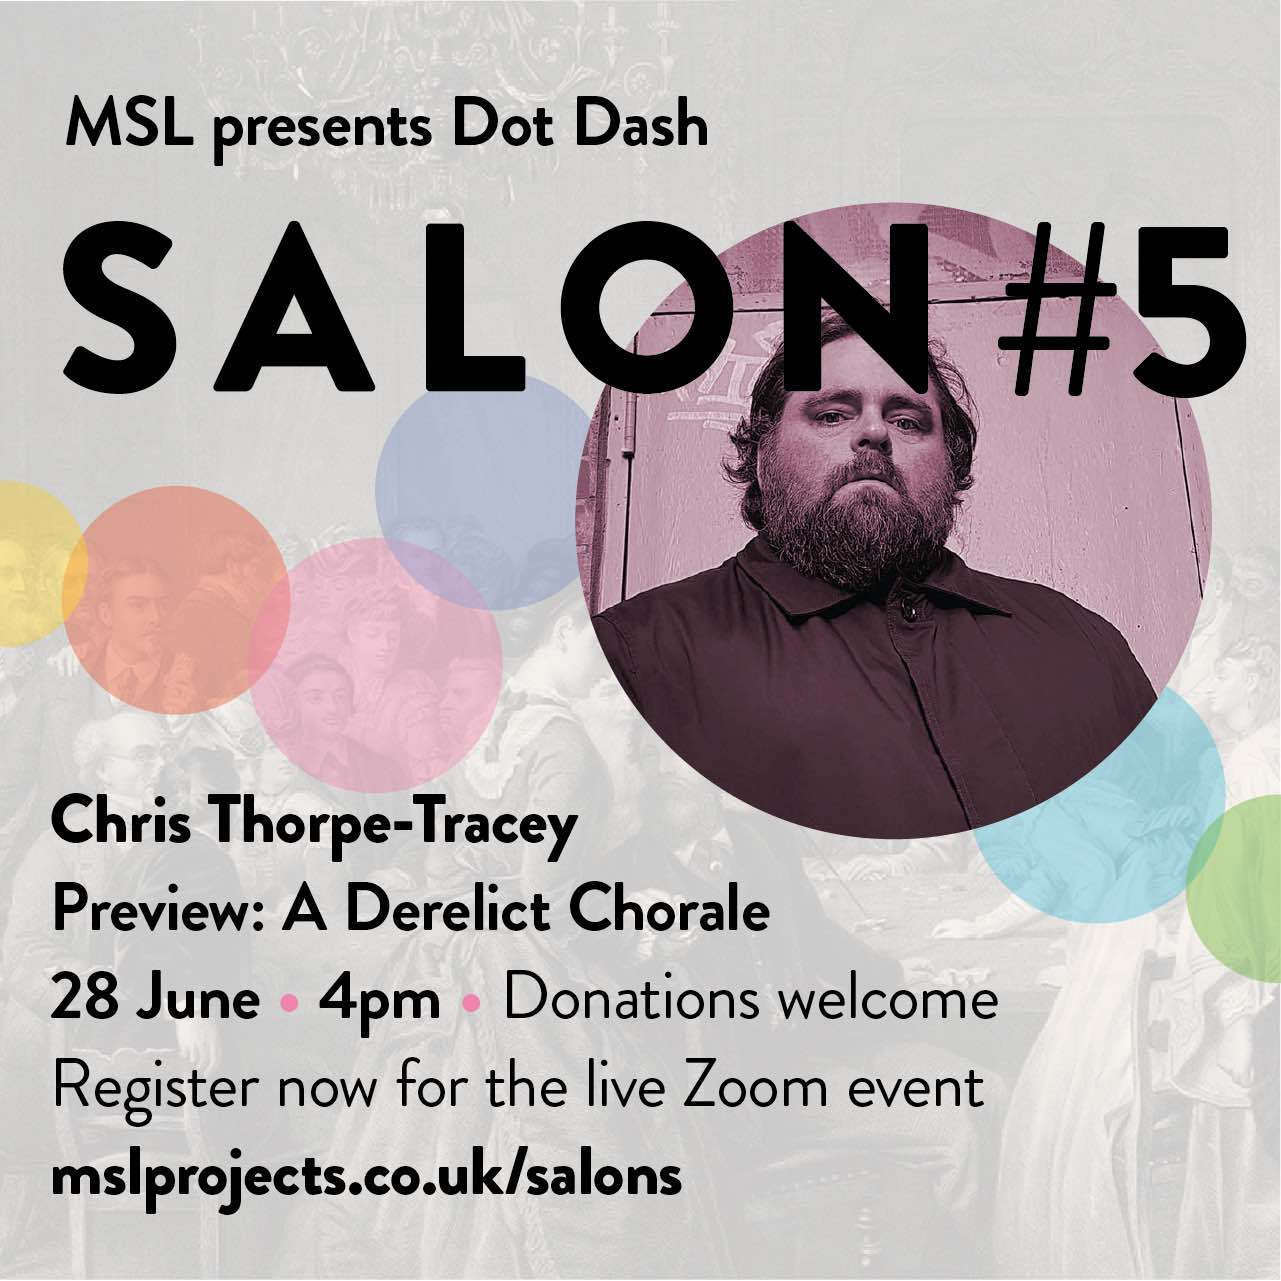 Salon 5 Preview: A Derelict Chorale Sunday 28 June for MSL Projects